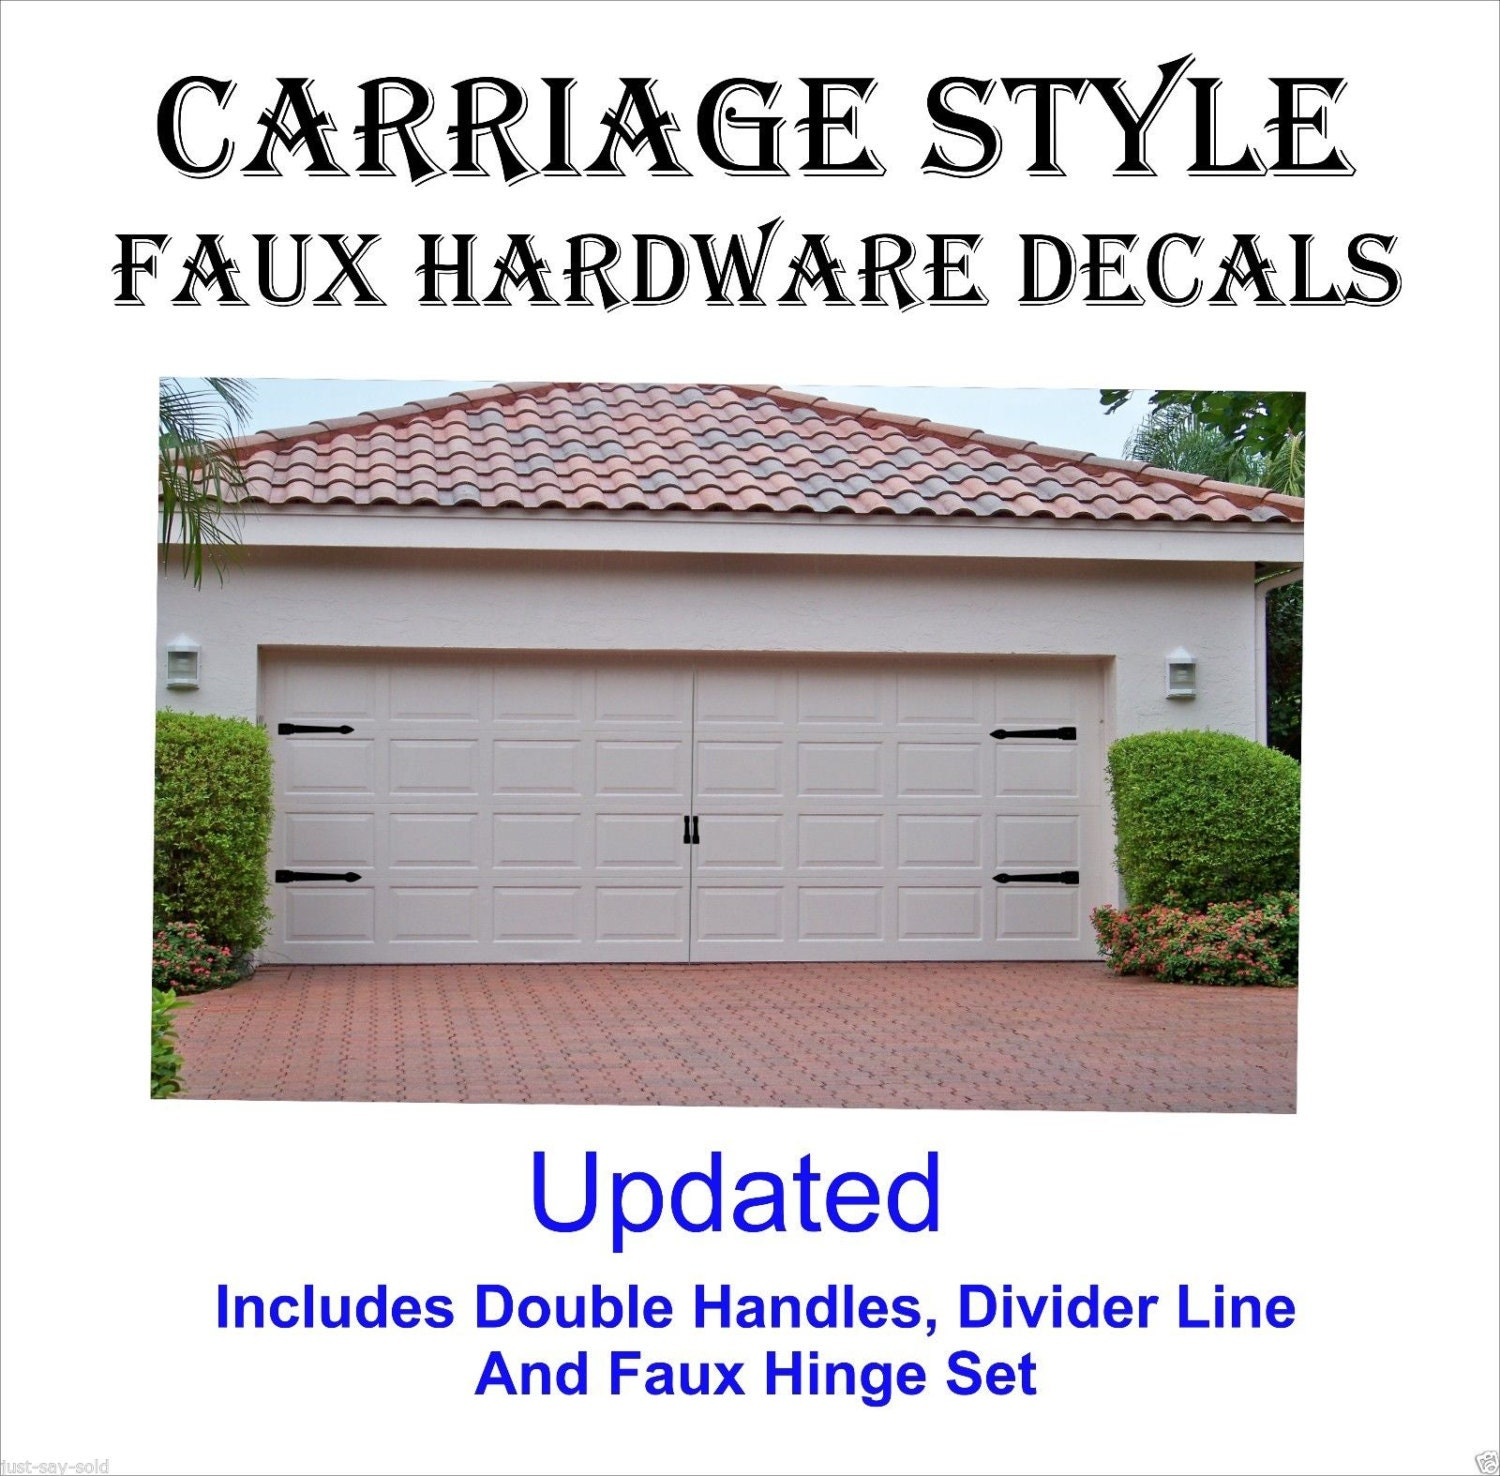 Carriage house style garage door faux hardware vinyl decal kit for Carriage style garage doors kit